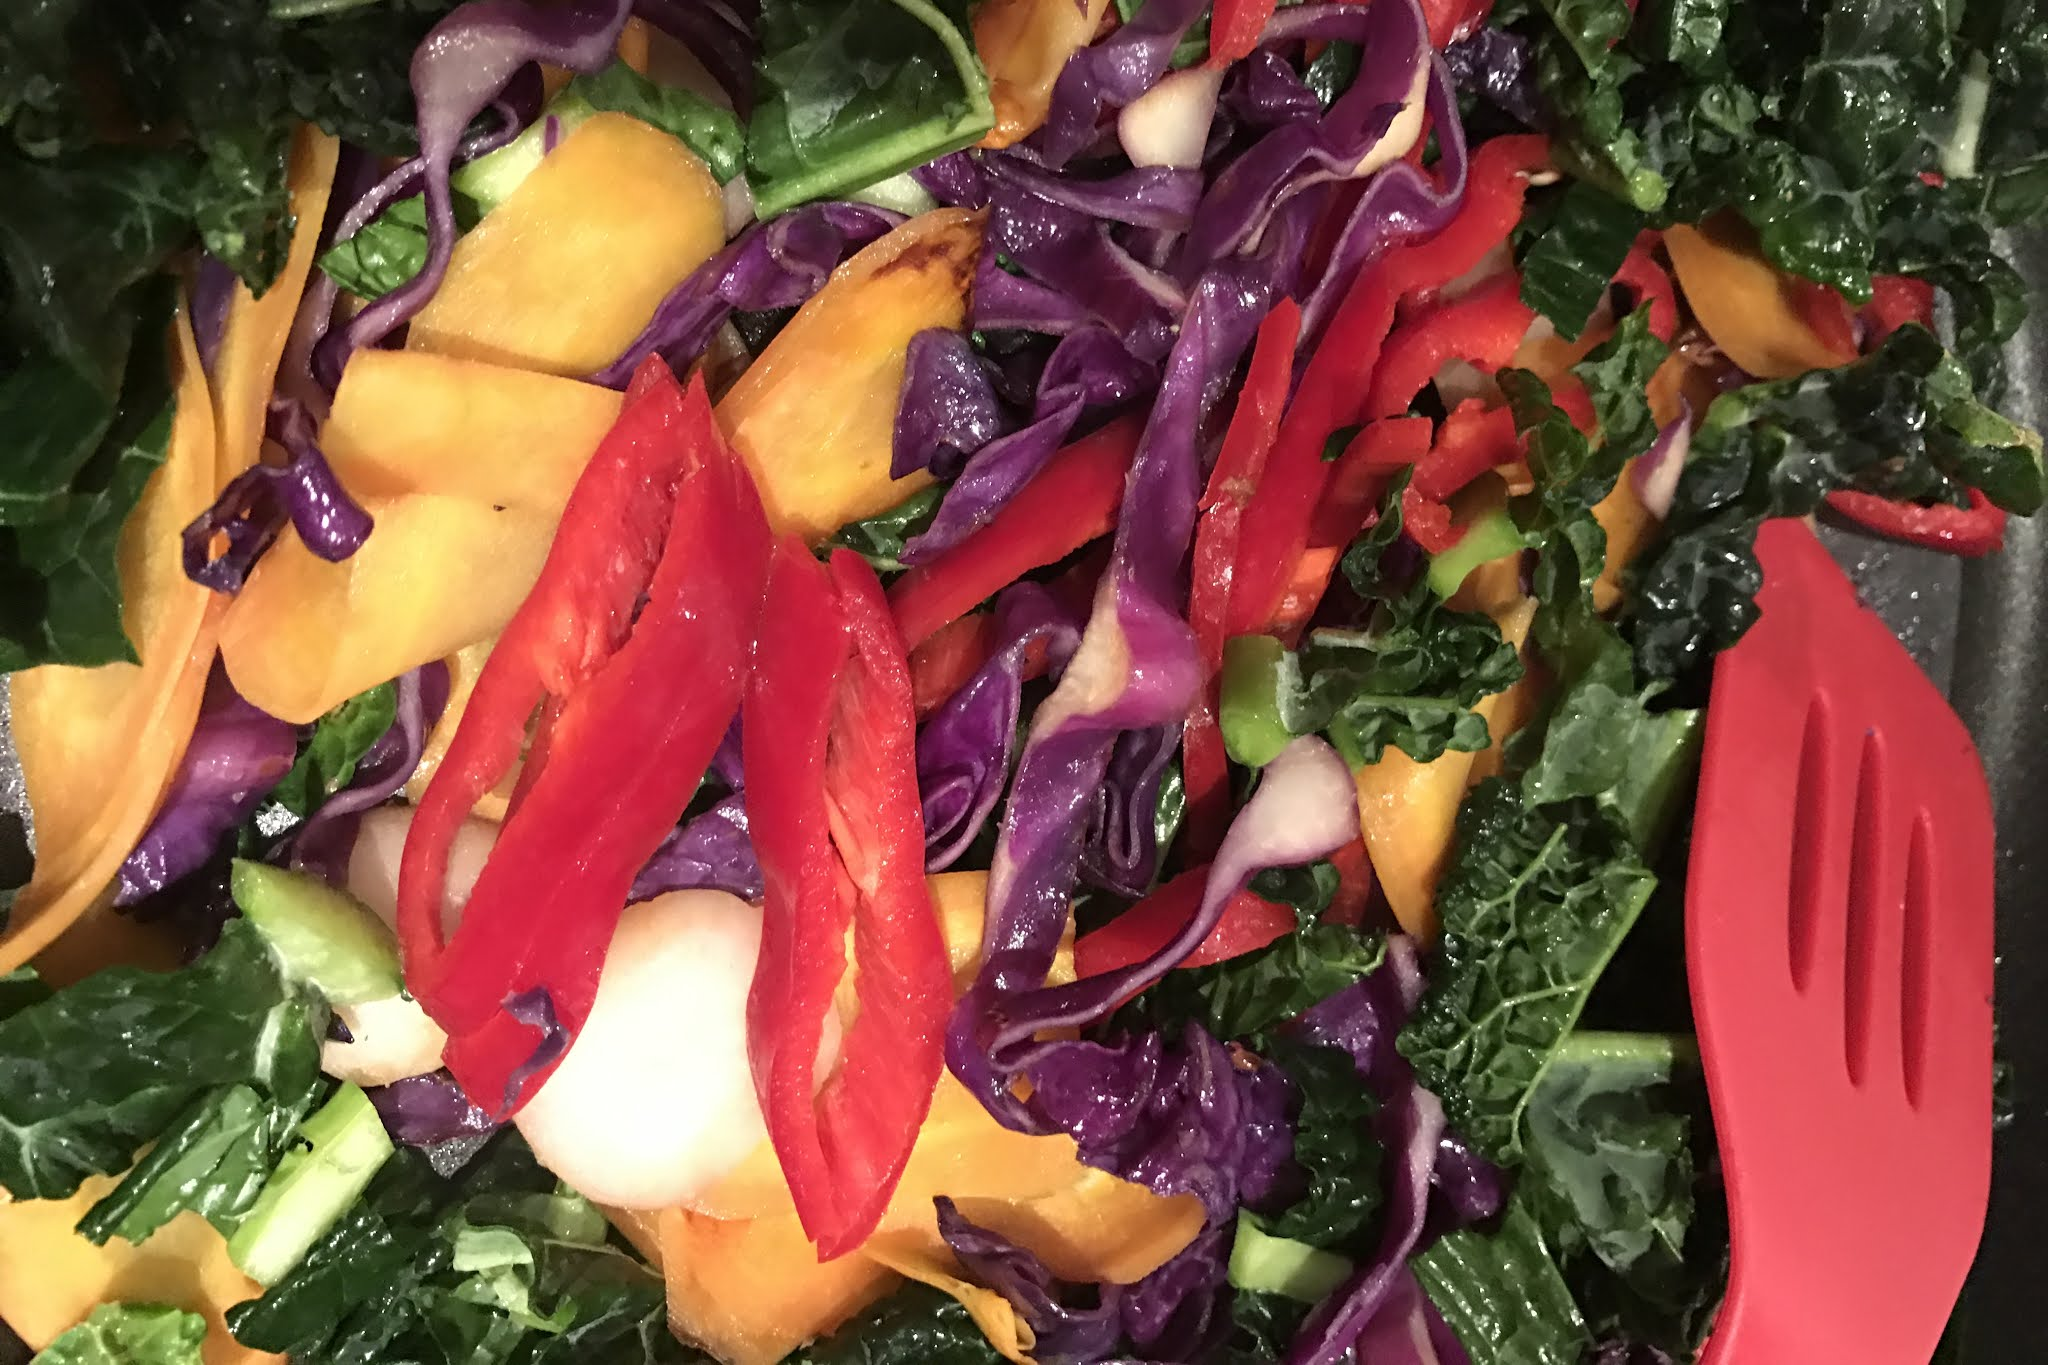 A colourful vegetable stir fry is not what I want to be eating